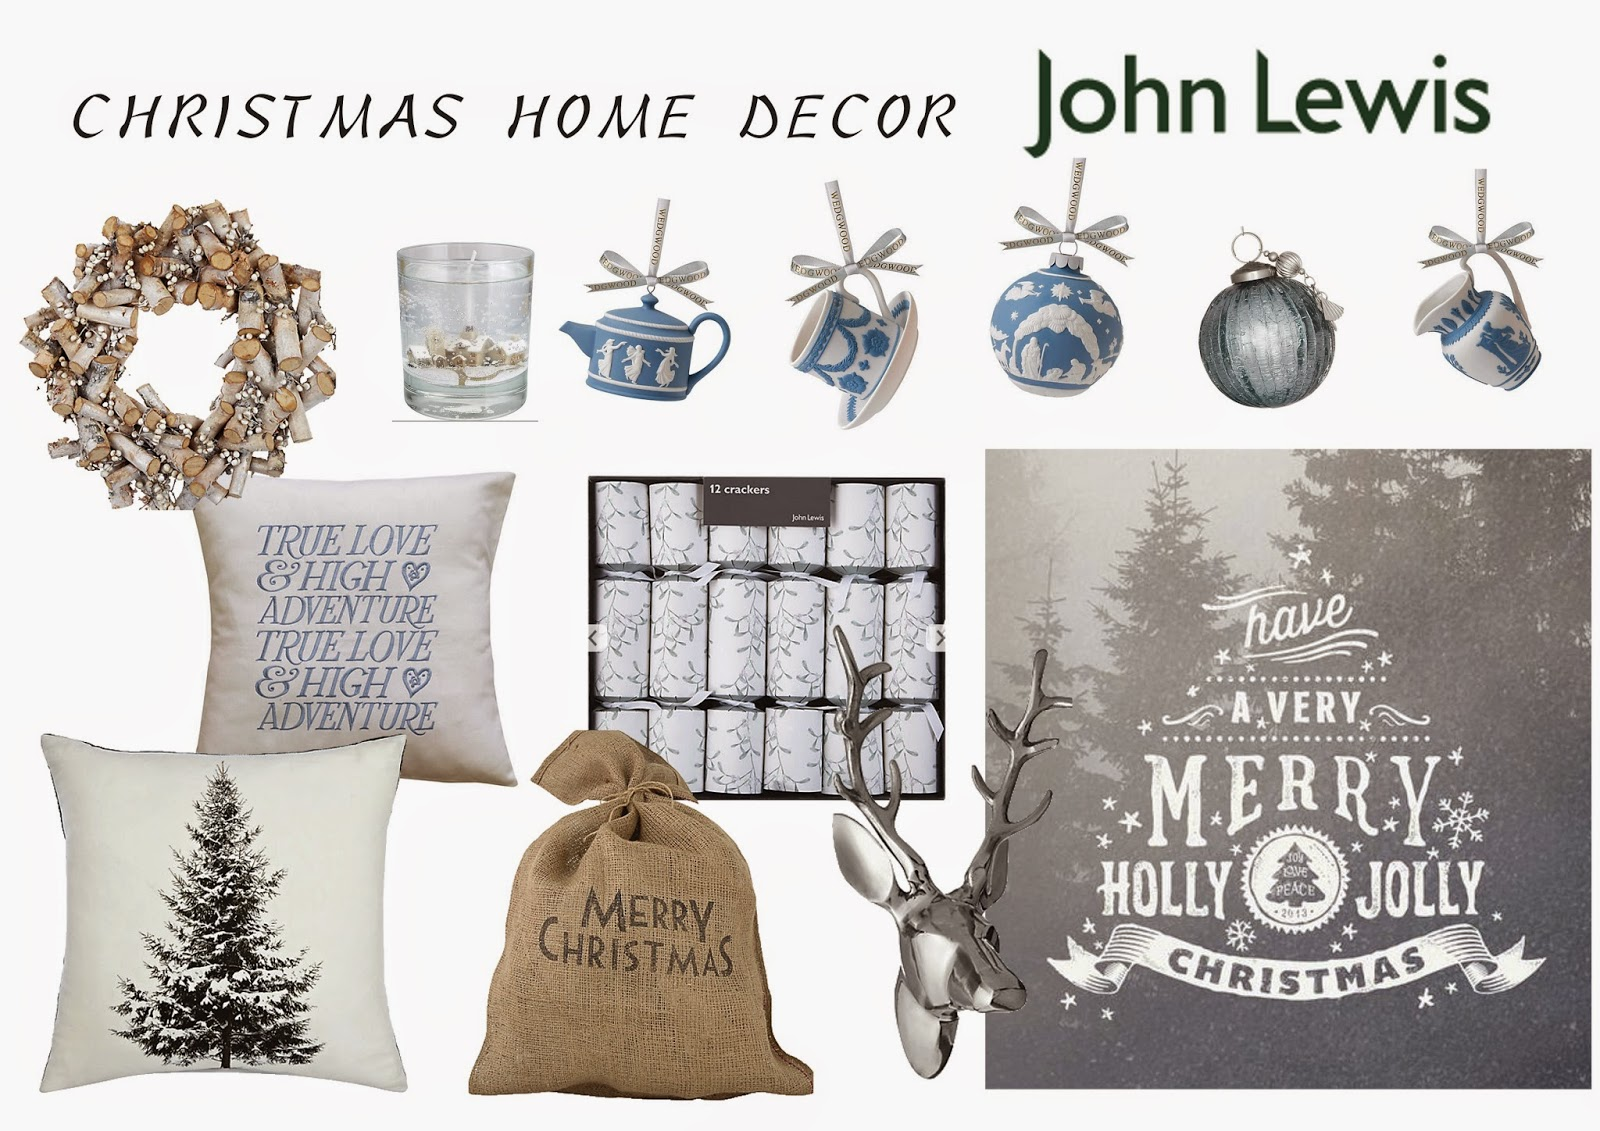 BLUE AND WHITE CHRISTMAS HOME DECOR FT. JOHN LEWIS